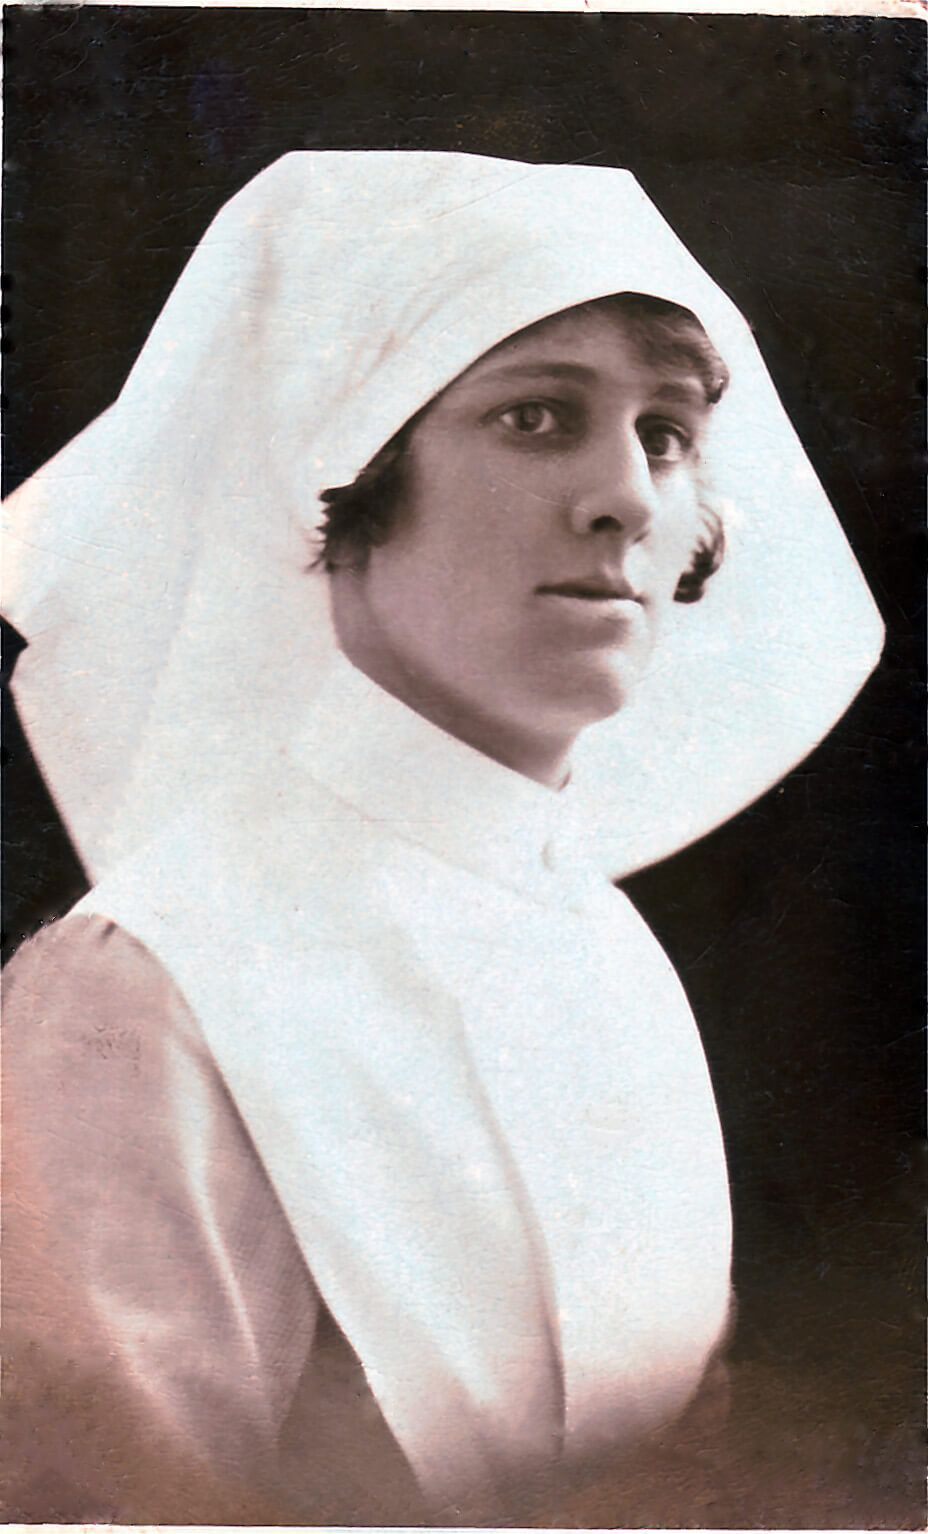 Daniel Baker's Family History Photographs - A picture of Audrey Kentv in an old fashioned nurses uniform